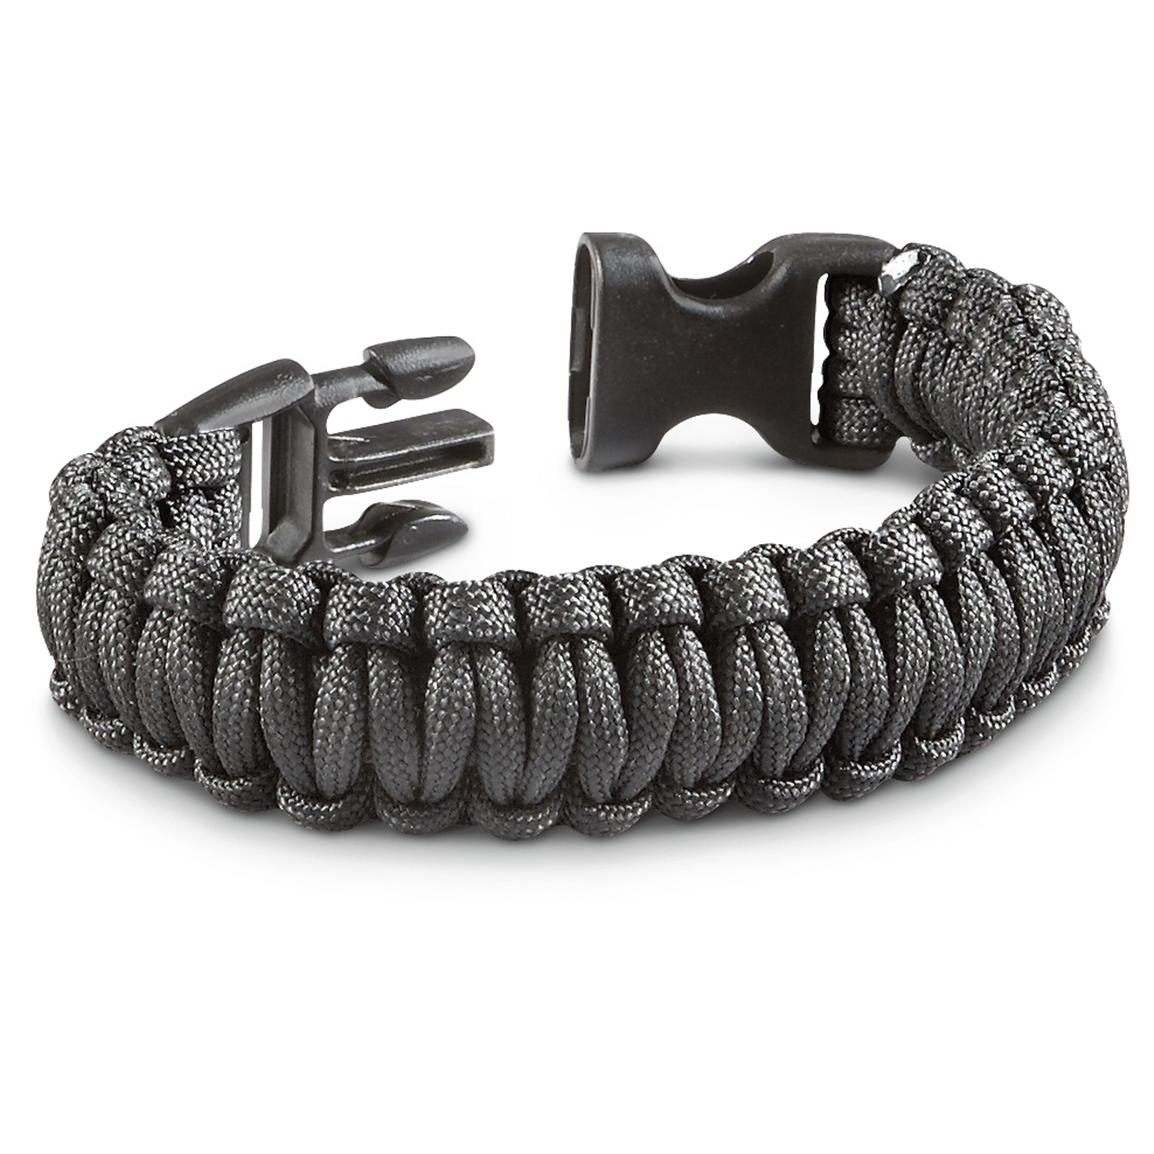 3 Paracord Military Survival Bracelets, Black